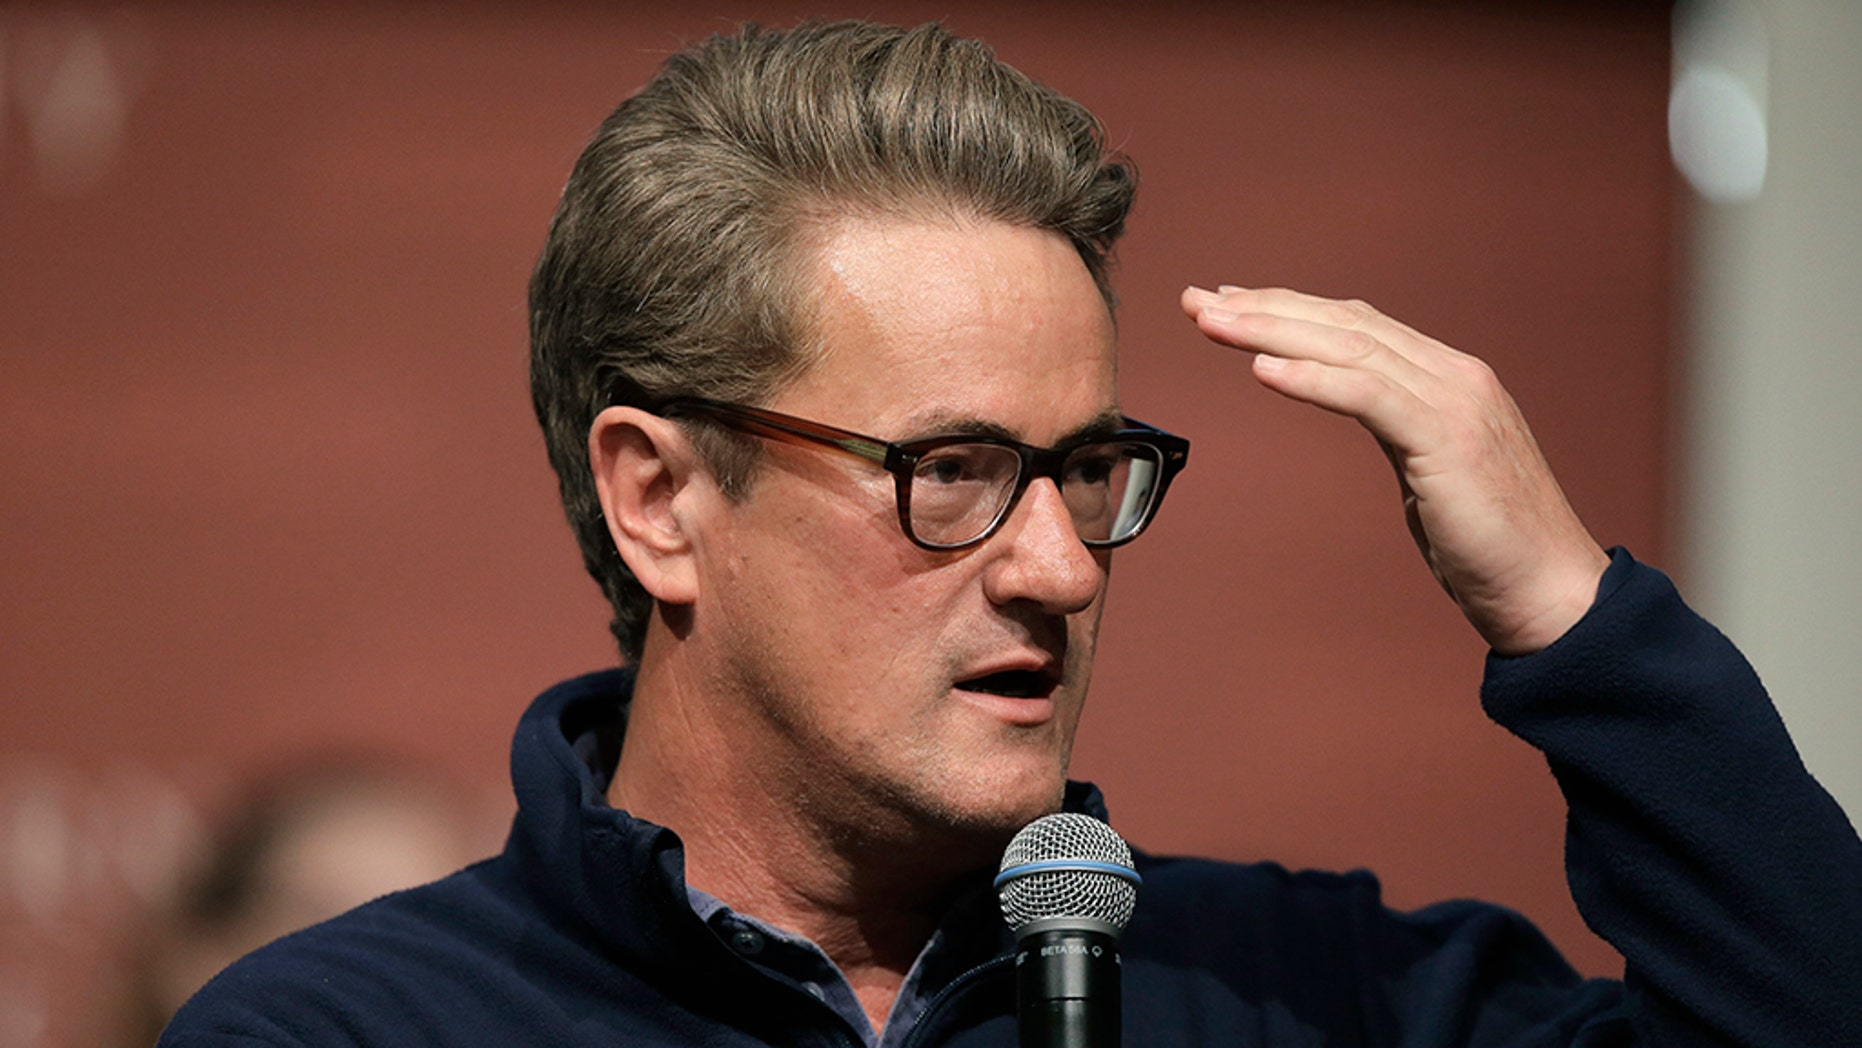 """MSNBC host Joe Scarborough took a shot at both President Trump and his supporters Friday, labeling both as """"openly racist."""""""